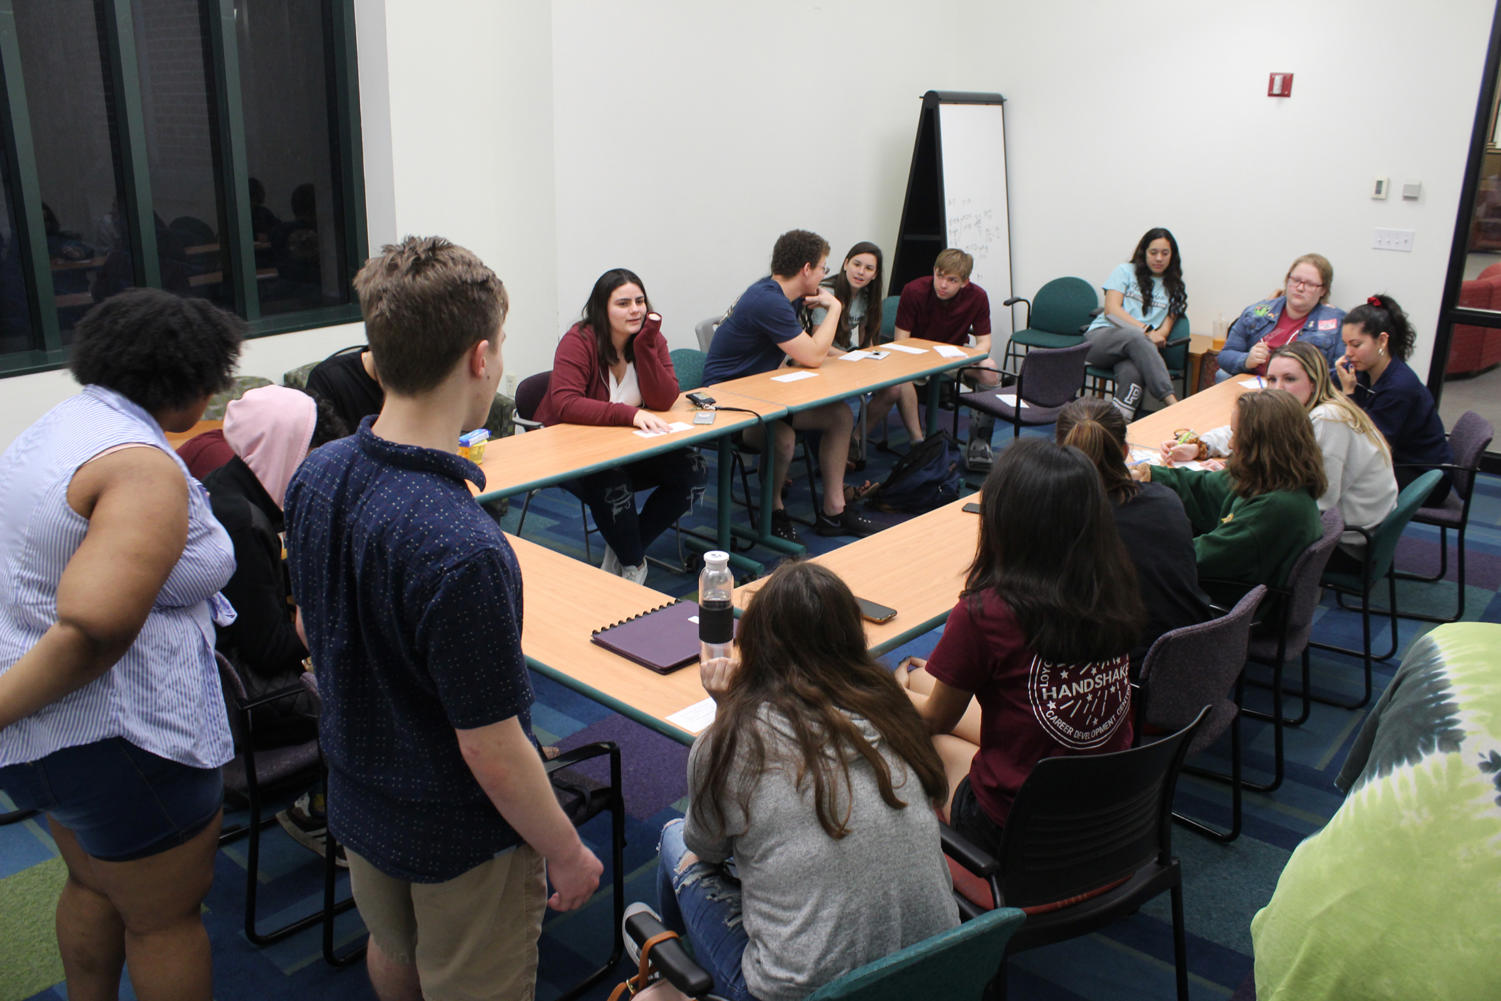 Chandler Boudreaux, finance freshman, and Shamaria Bell, general studies freshman, lead the first meeting of the Photography Organization for Wolves on March 13, 2019. Photo credit: Cristian Orellana